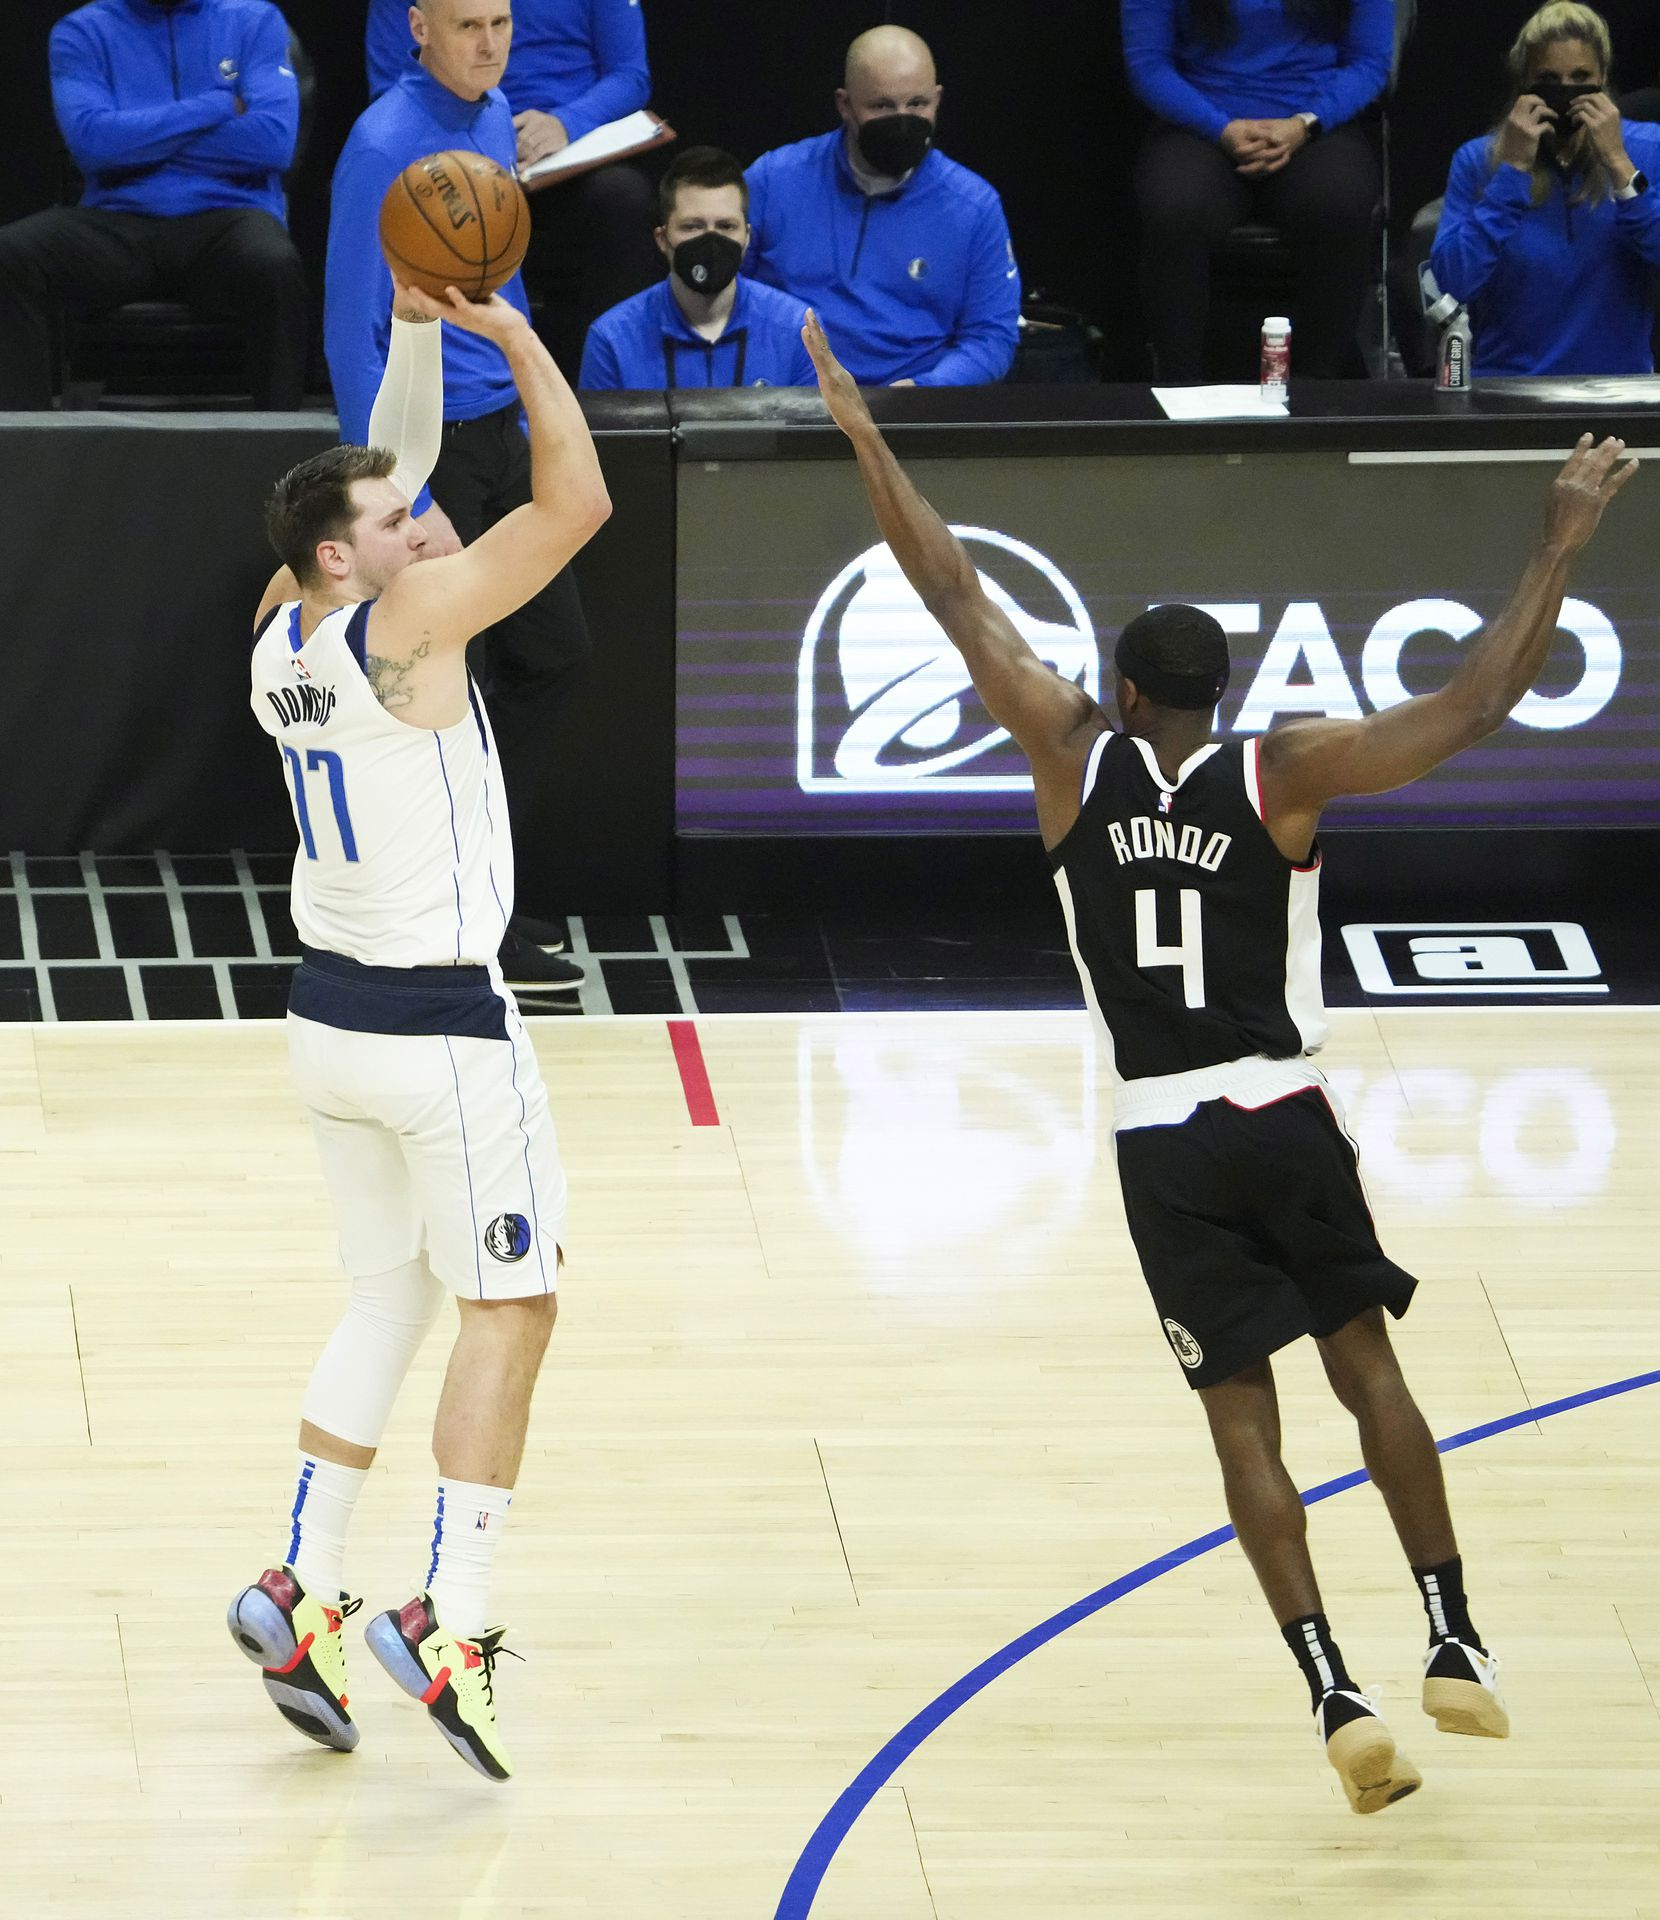 Dallas Mavericks guard Luka Doncic (77) shoots a 3-pointer over LA Clippers guard Rajon Rondo (4) during the first quarter of Game 7 of an NBA playoff series at the Staples Center on Sunday, June 6, 2021, in Los Angeles.